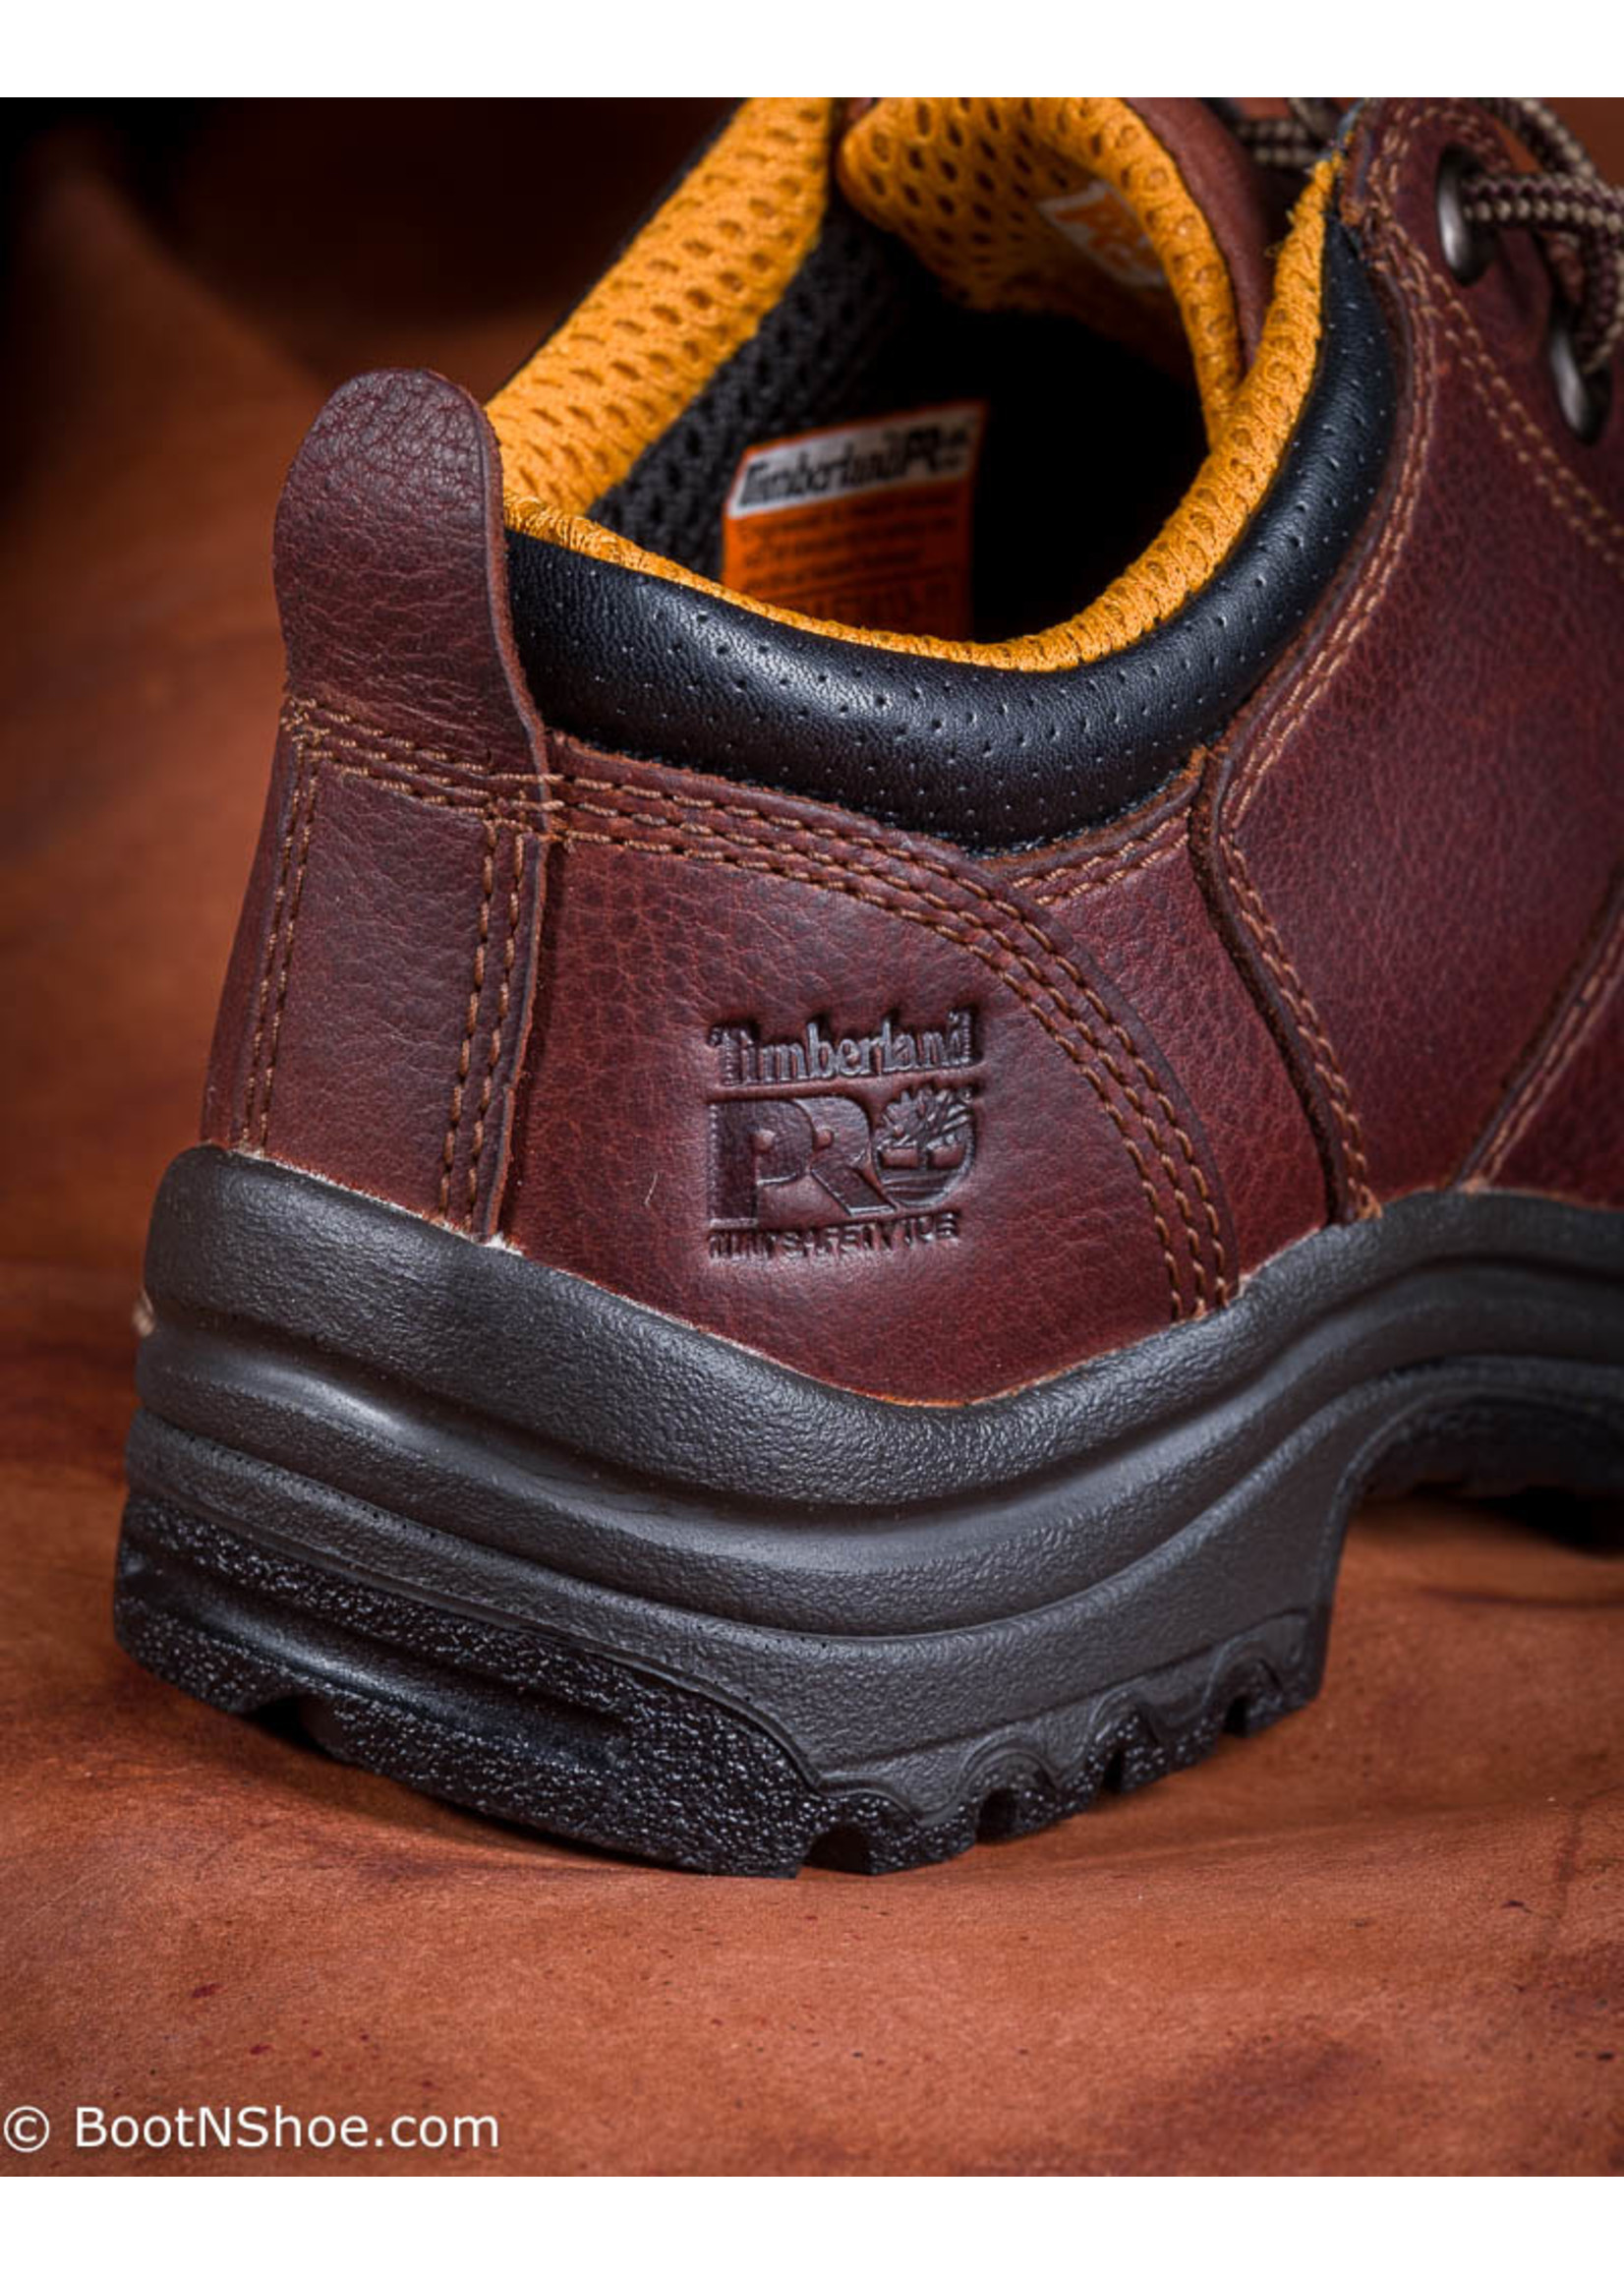 Timberland Pro Women's Titan Alloy Safety Toe Oxford Work Shoes  63189